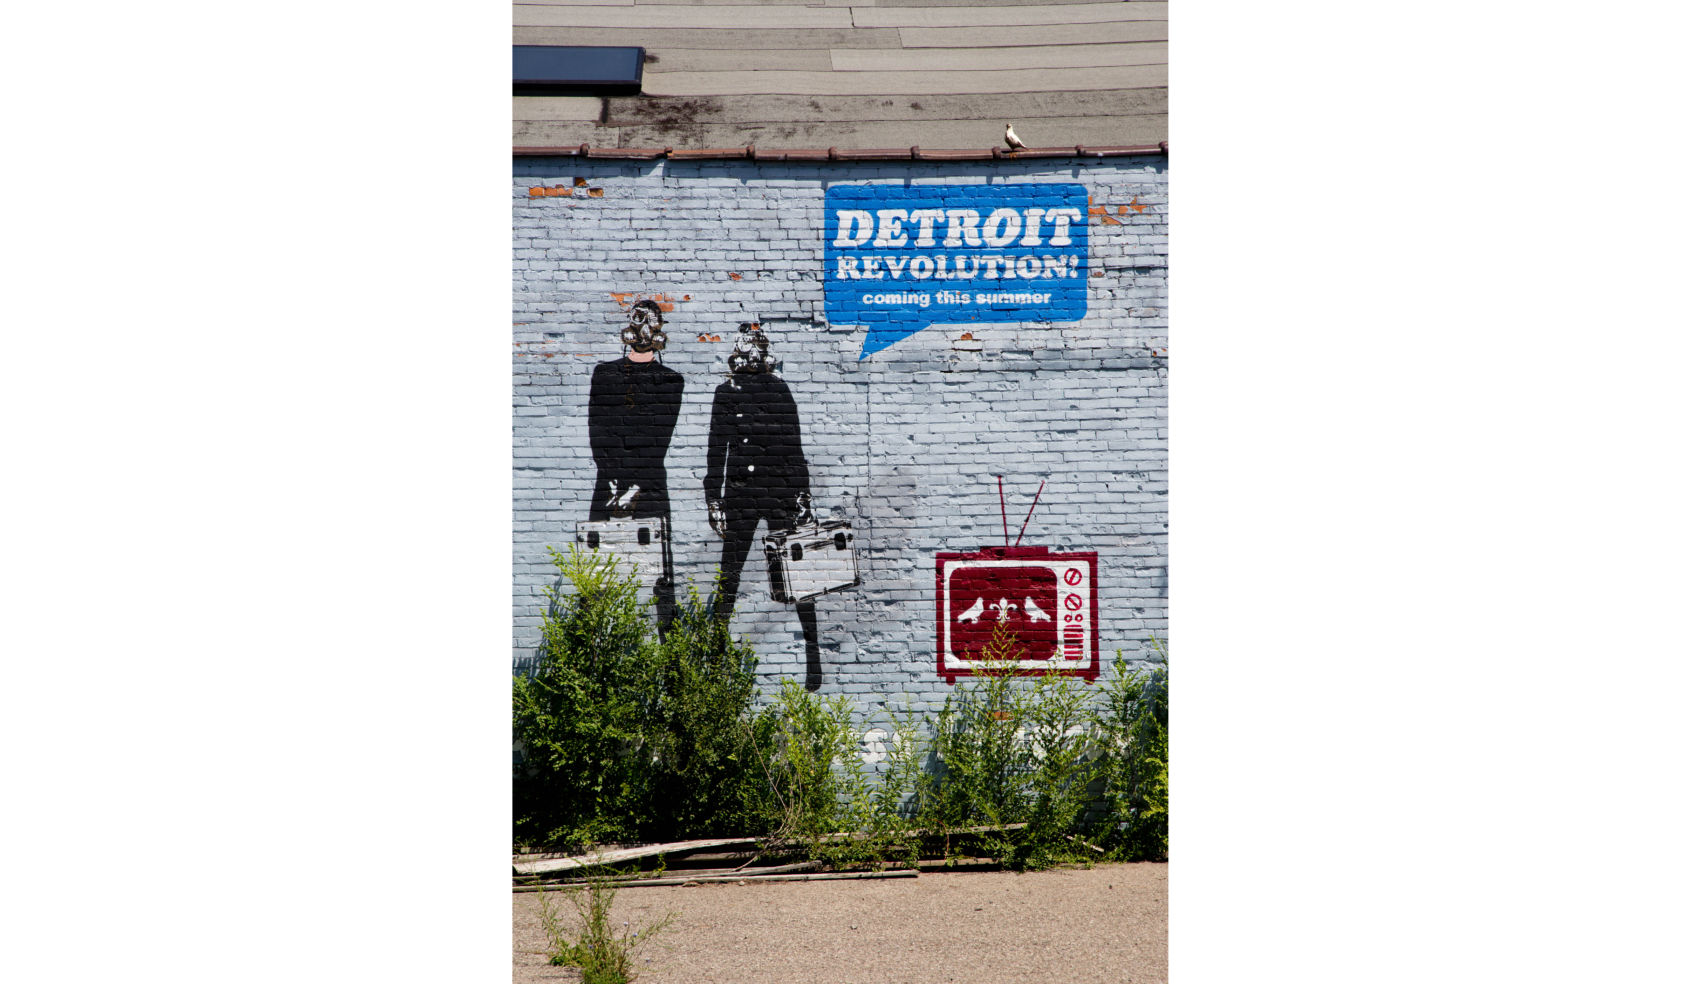 The revolution will be televised, at least according to this street art spotted in a back parking lot in Midtown Detroit.